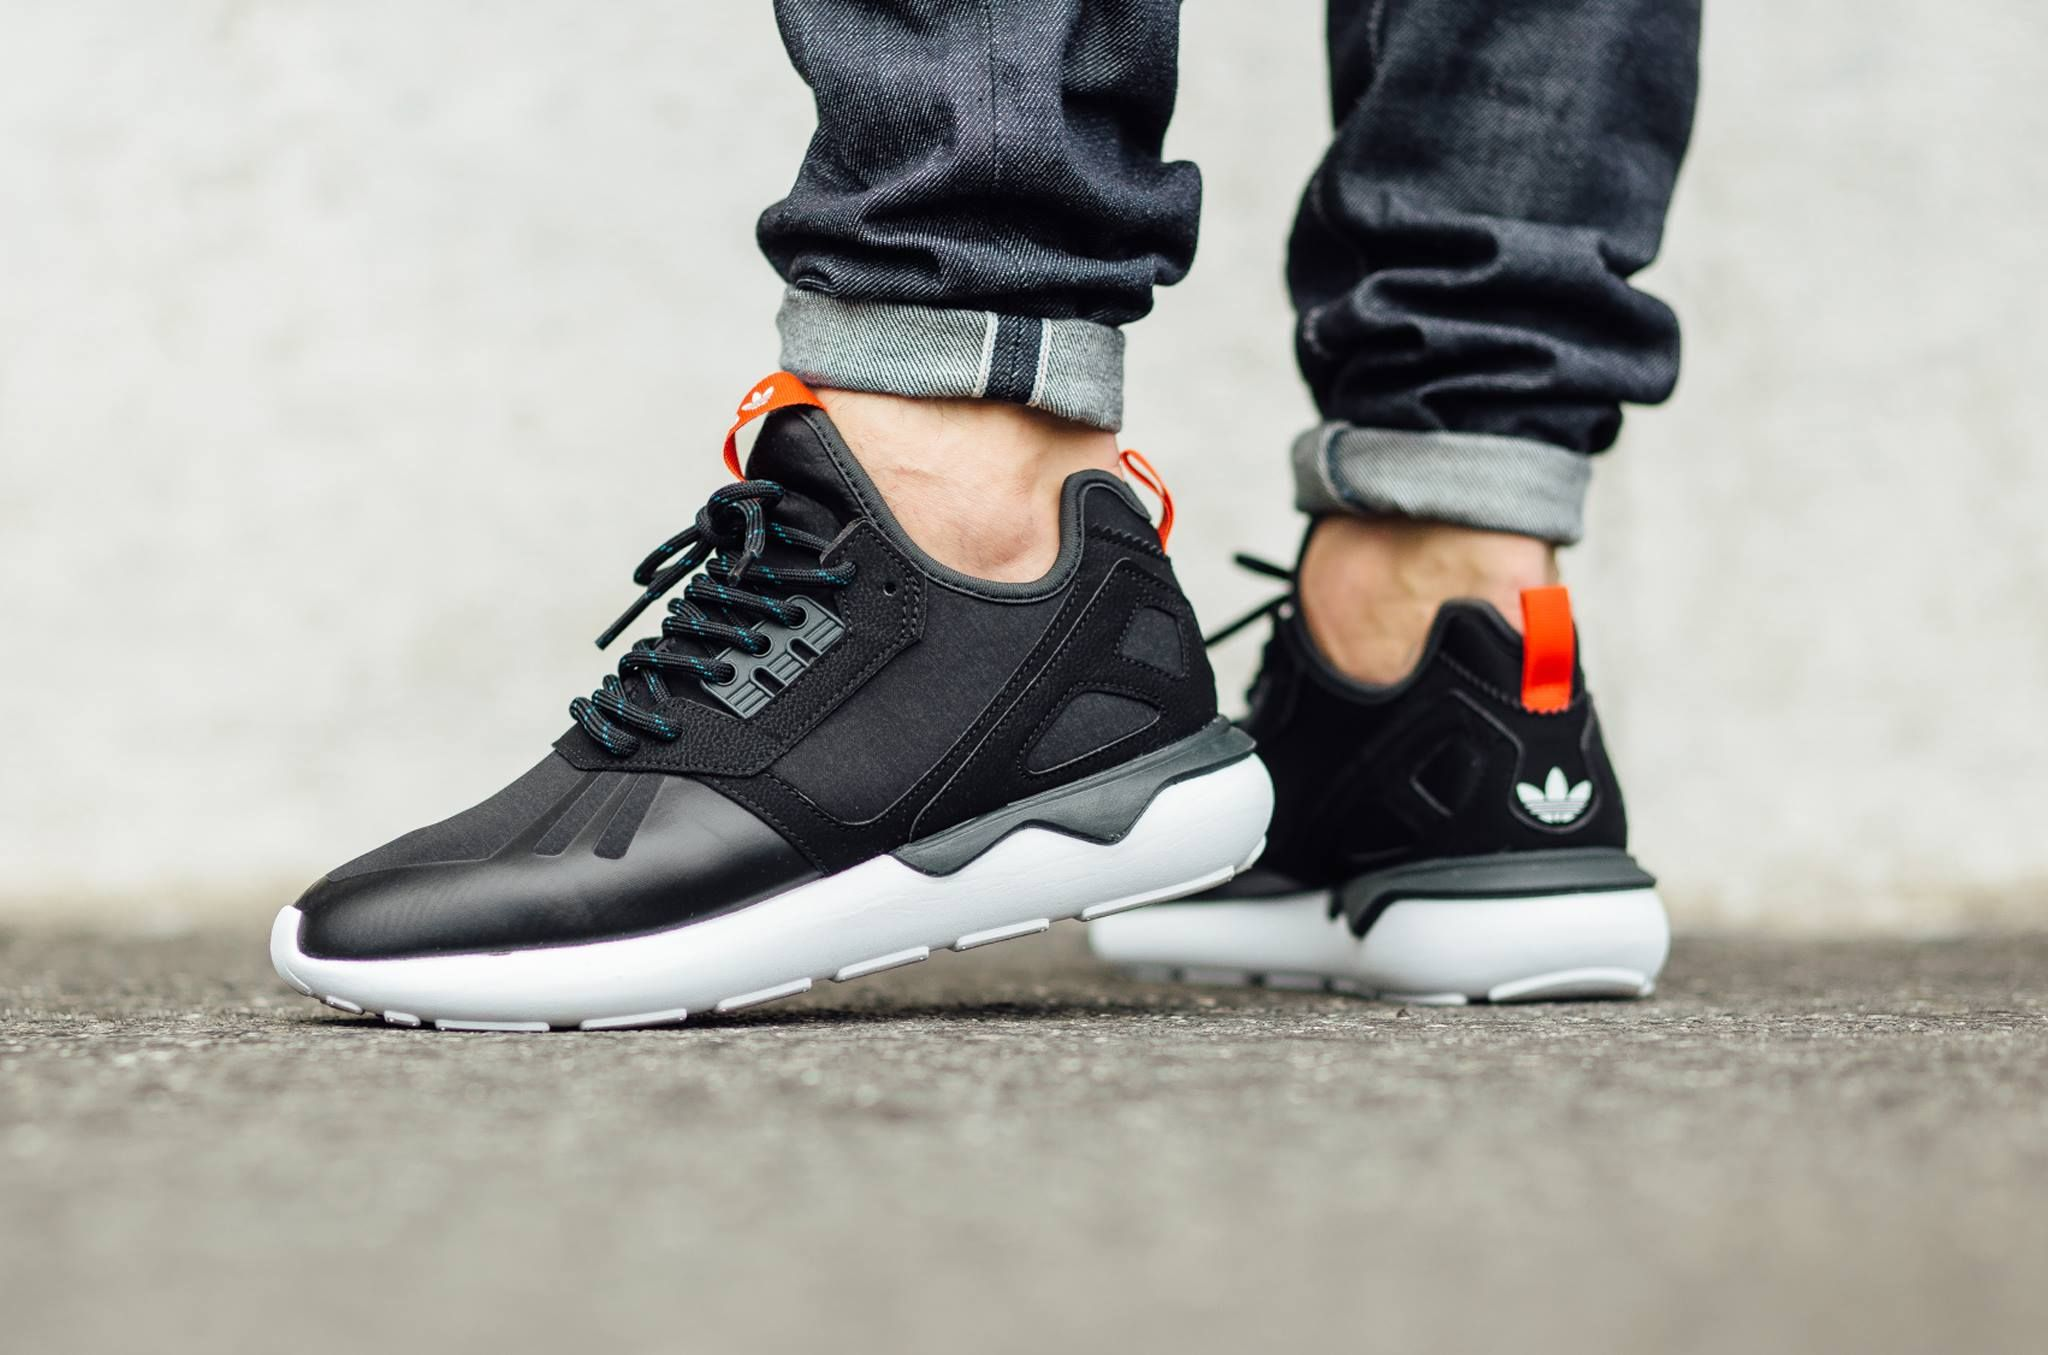 Adidas Tubular Runner (Core Black, Petrol & Off White) End